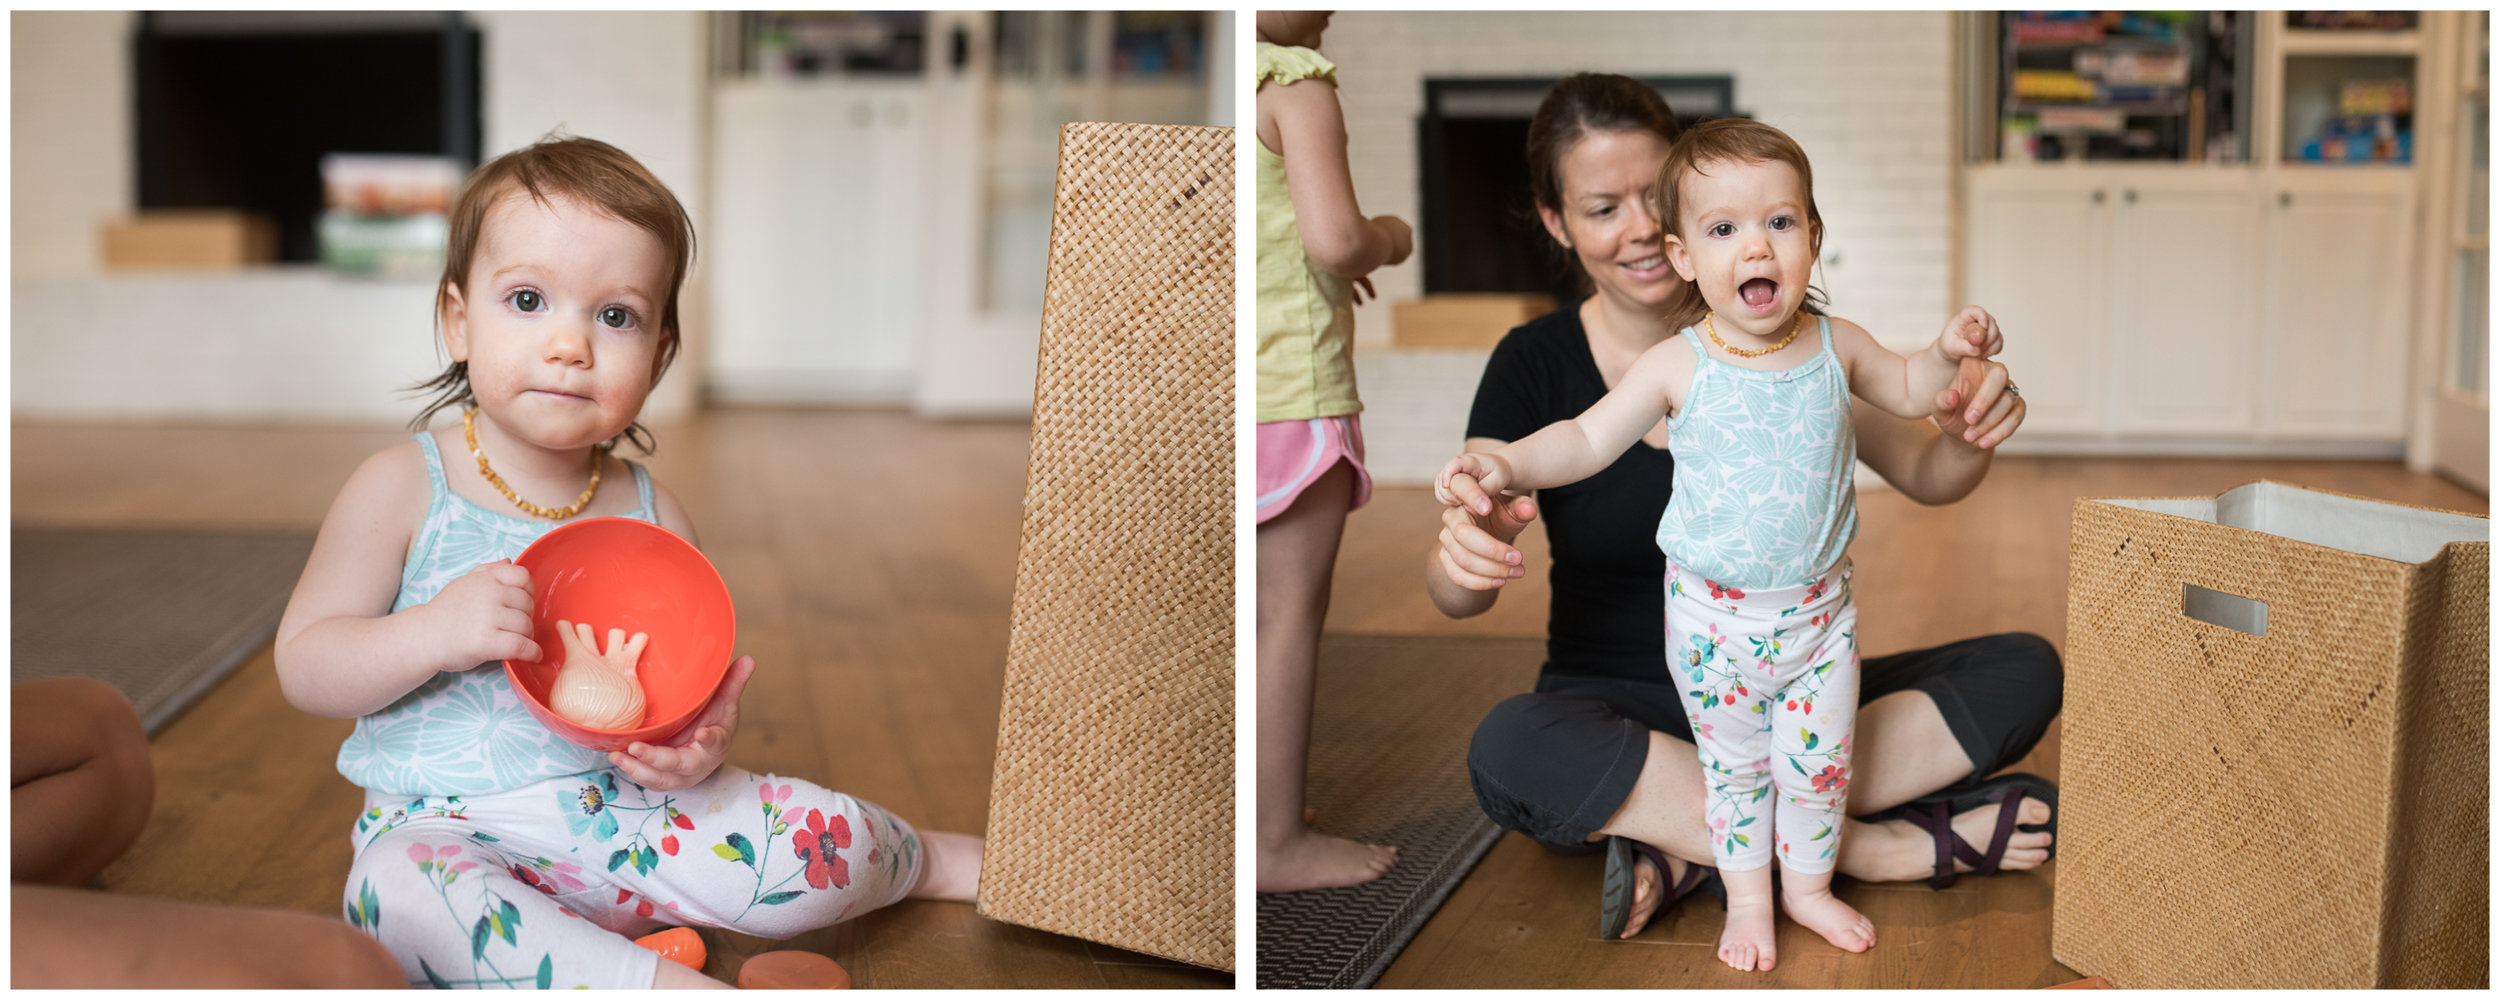 We had a visit from this little cutie (and her big sister and mama) who is just about ready to start running laps.